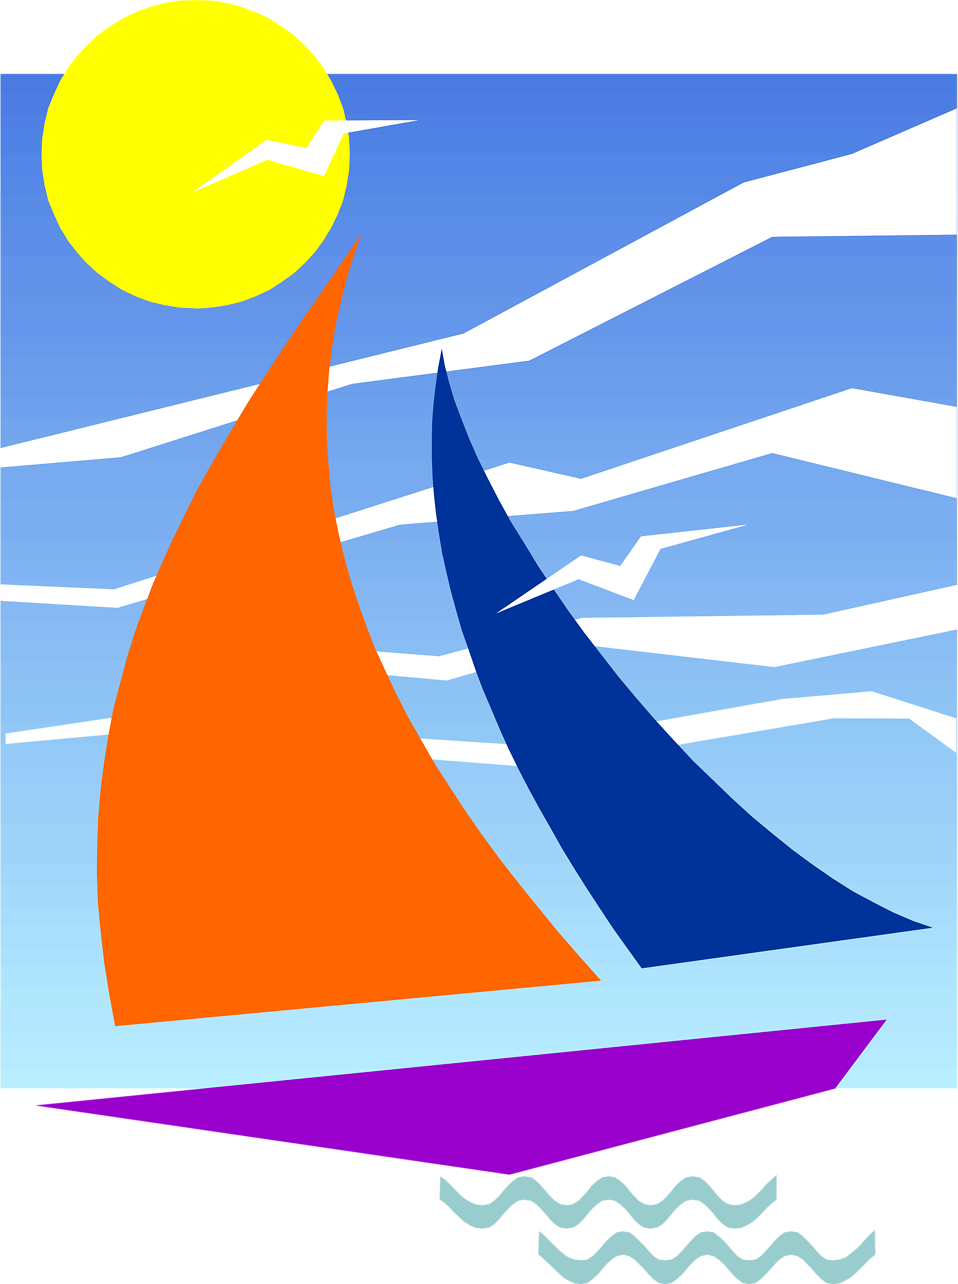 Free stock photo illustration. Clipart anchor sailboat